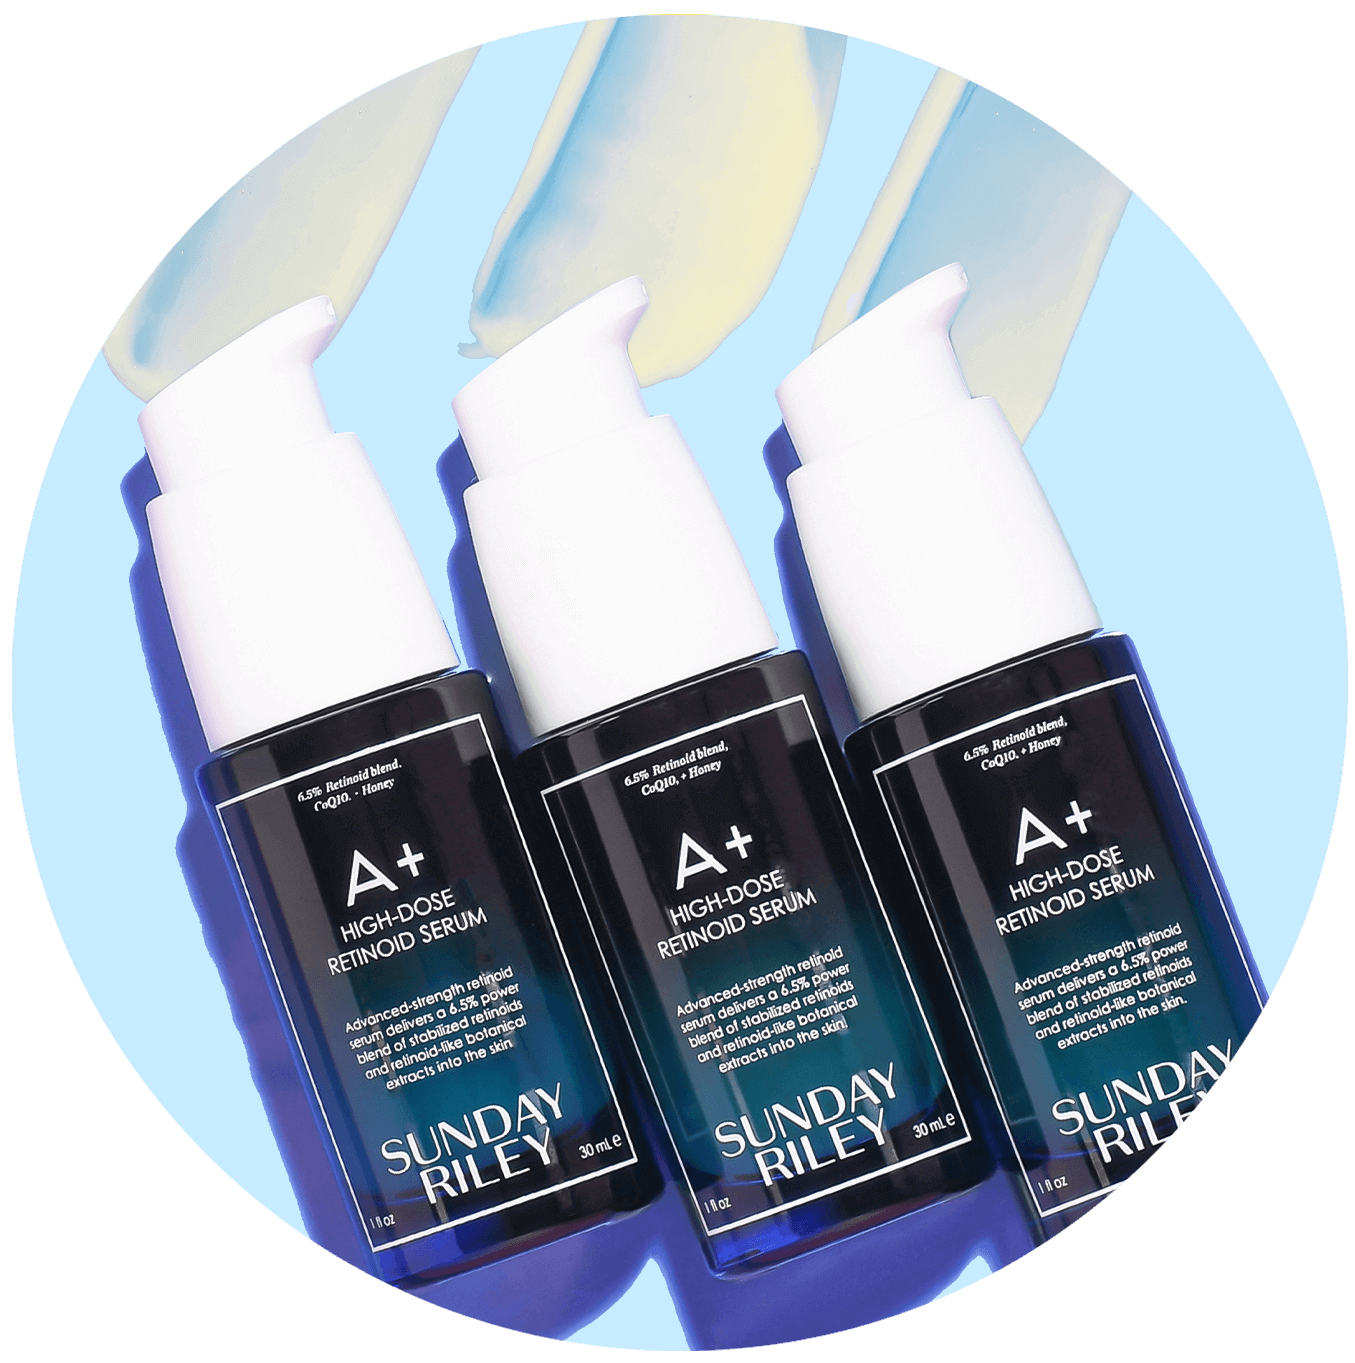 A+ high-dose retinoid serum bottles on blue background with goop